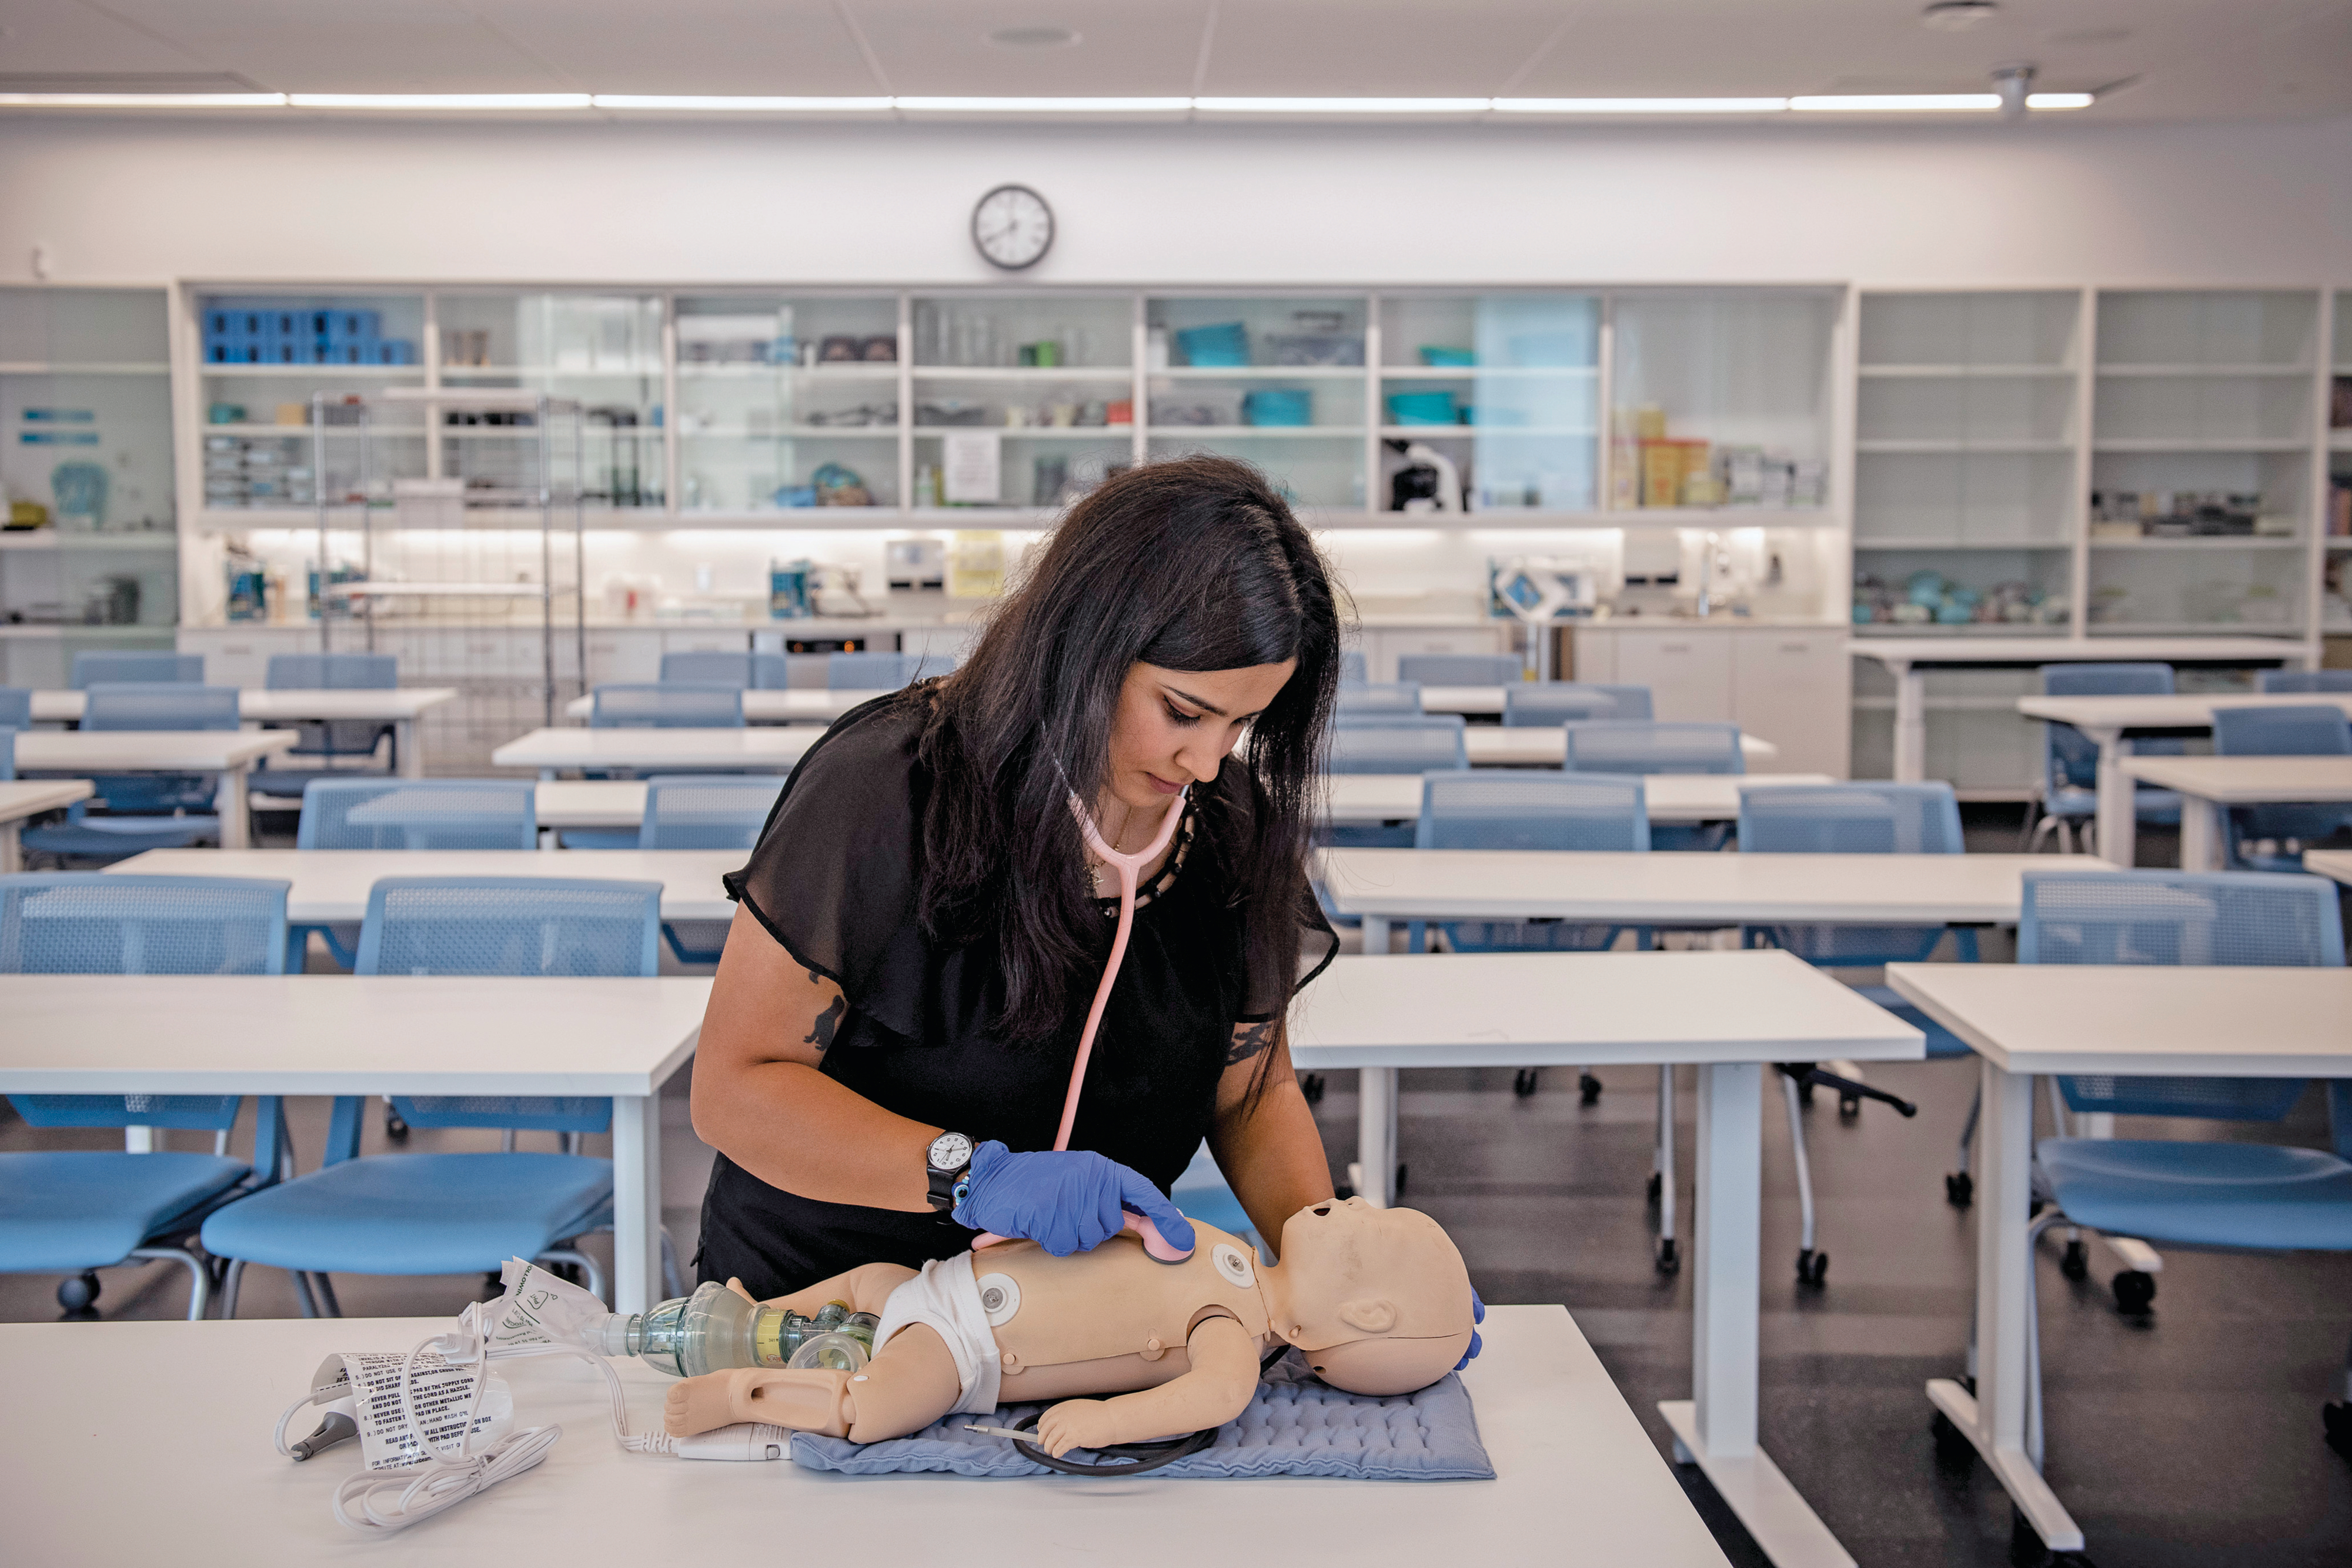 Maryam performs a mock checkup on a doll (Photograph by Kiana Hayeri)